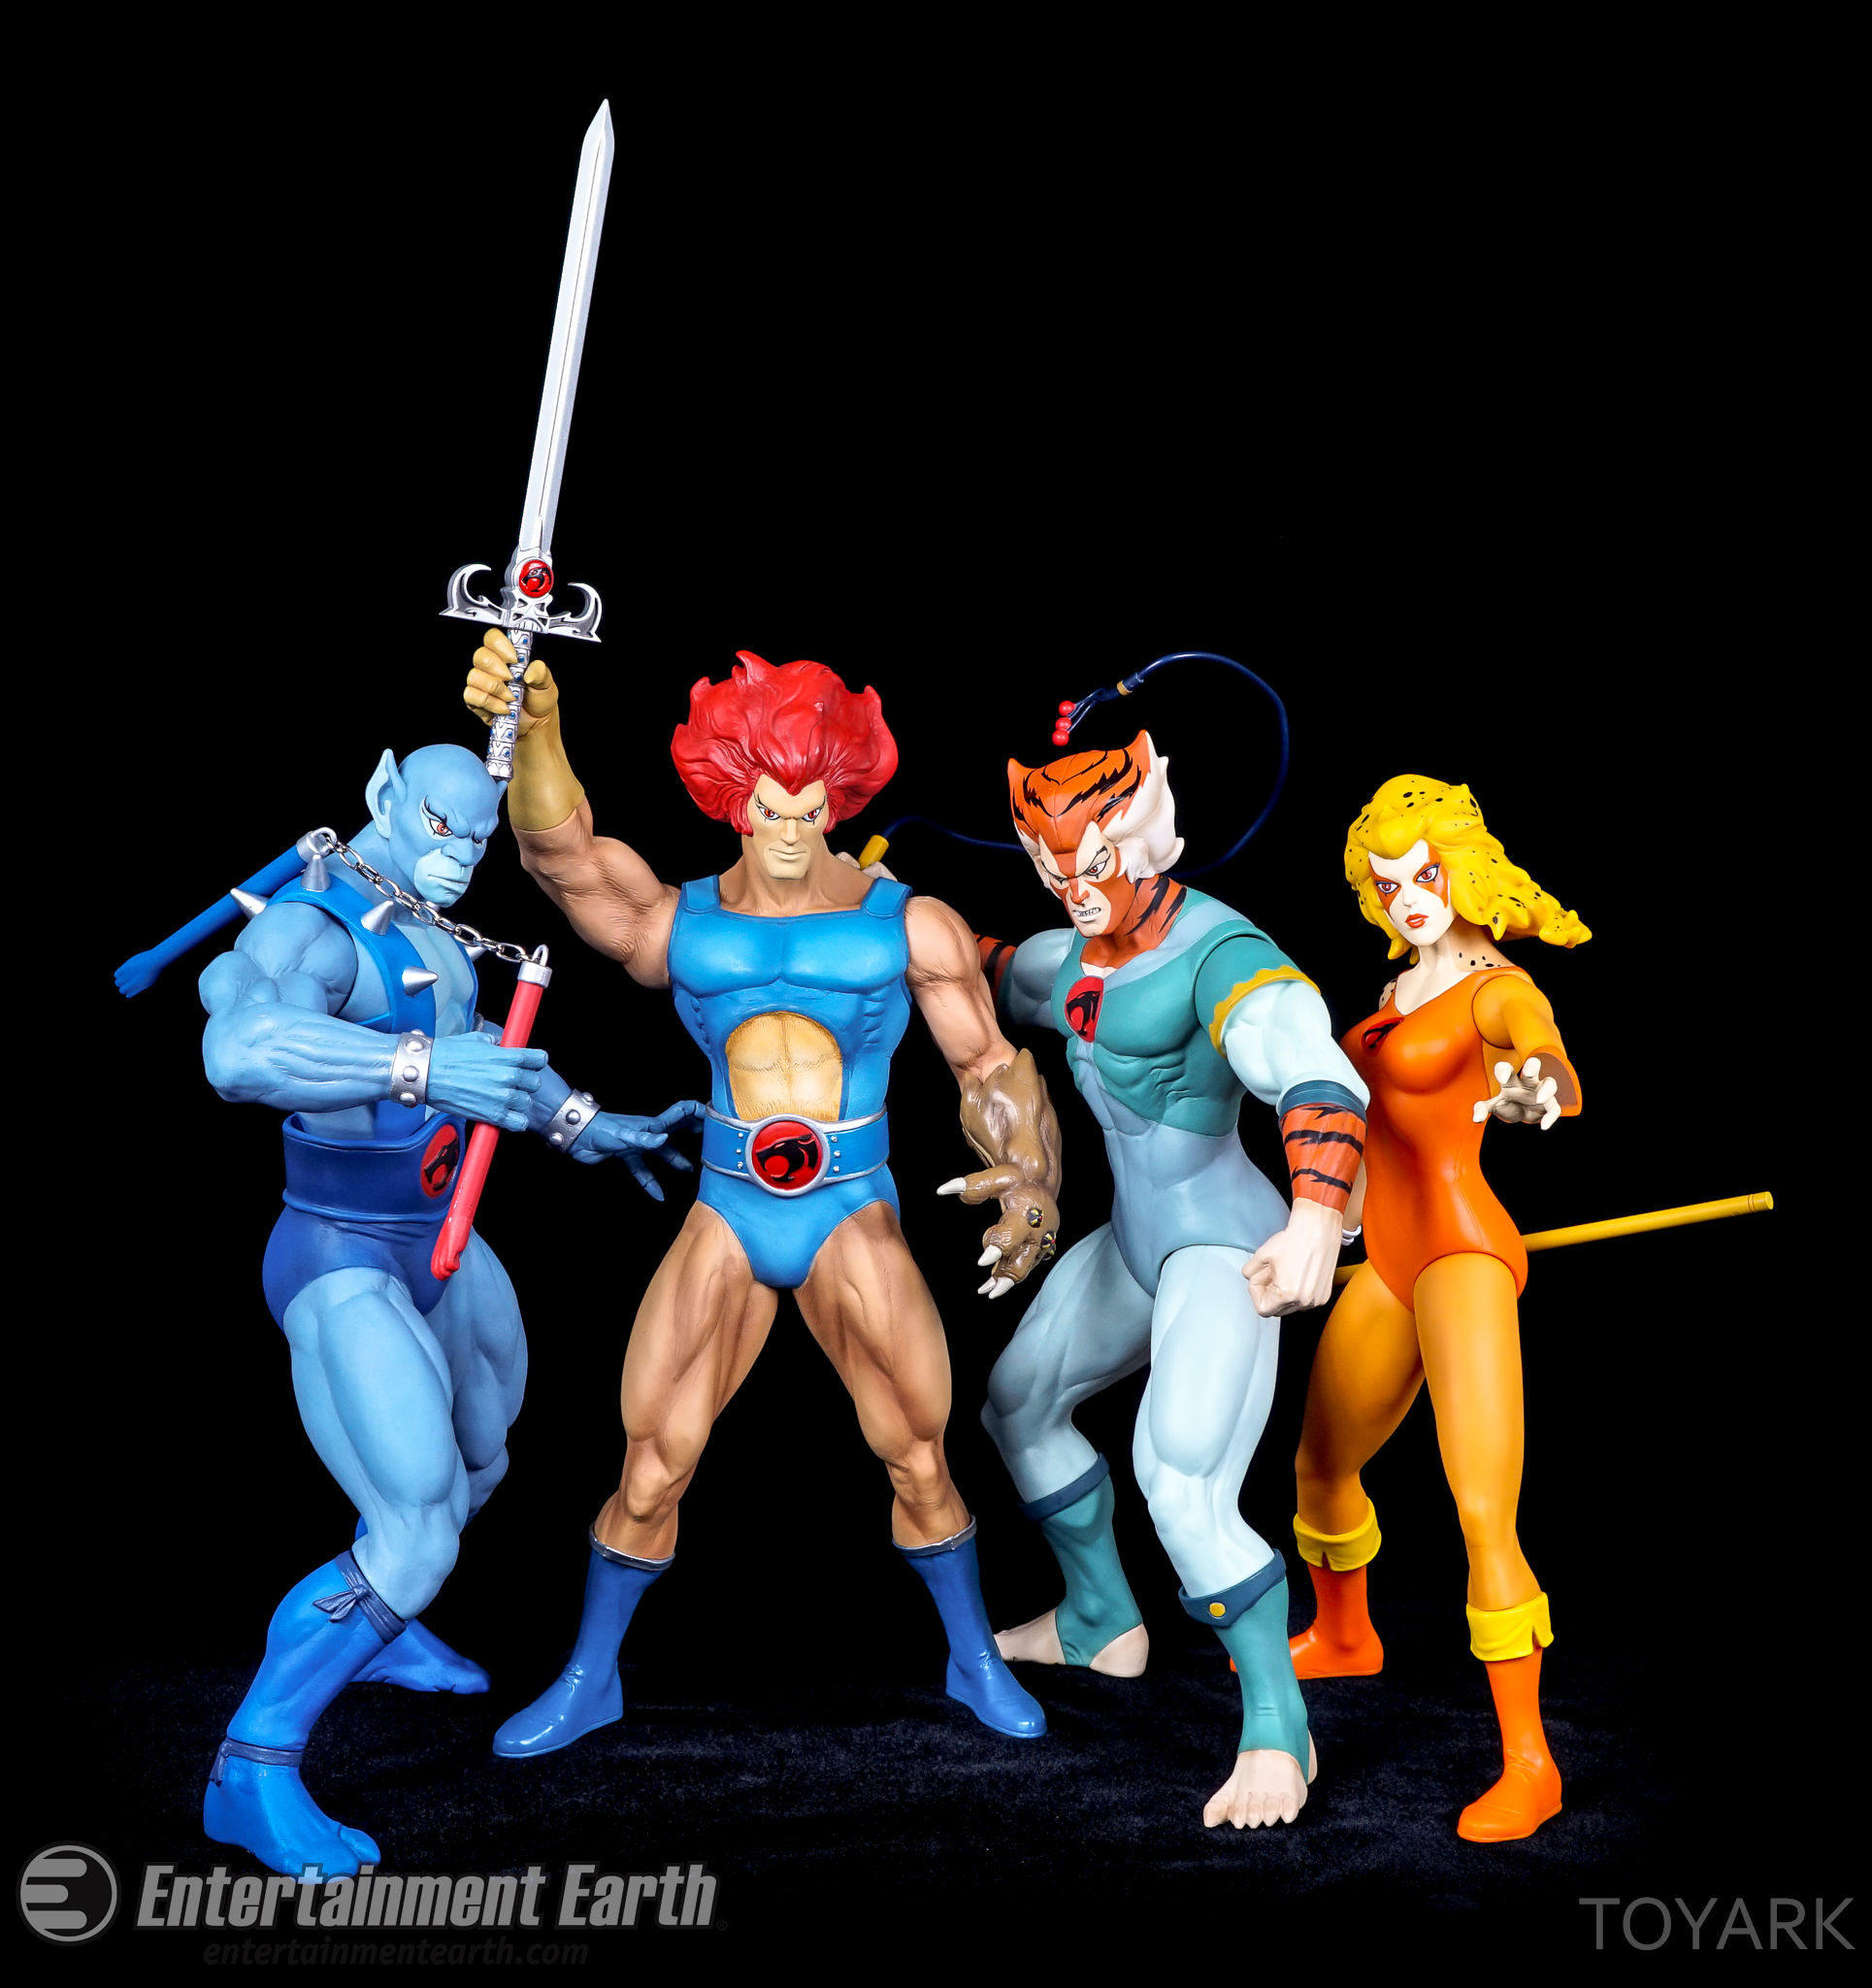 http://news.toyark.com/wp-content/uploads/sites/4/2016/05/Mezco-Thundercats-Tygra-043.jpg